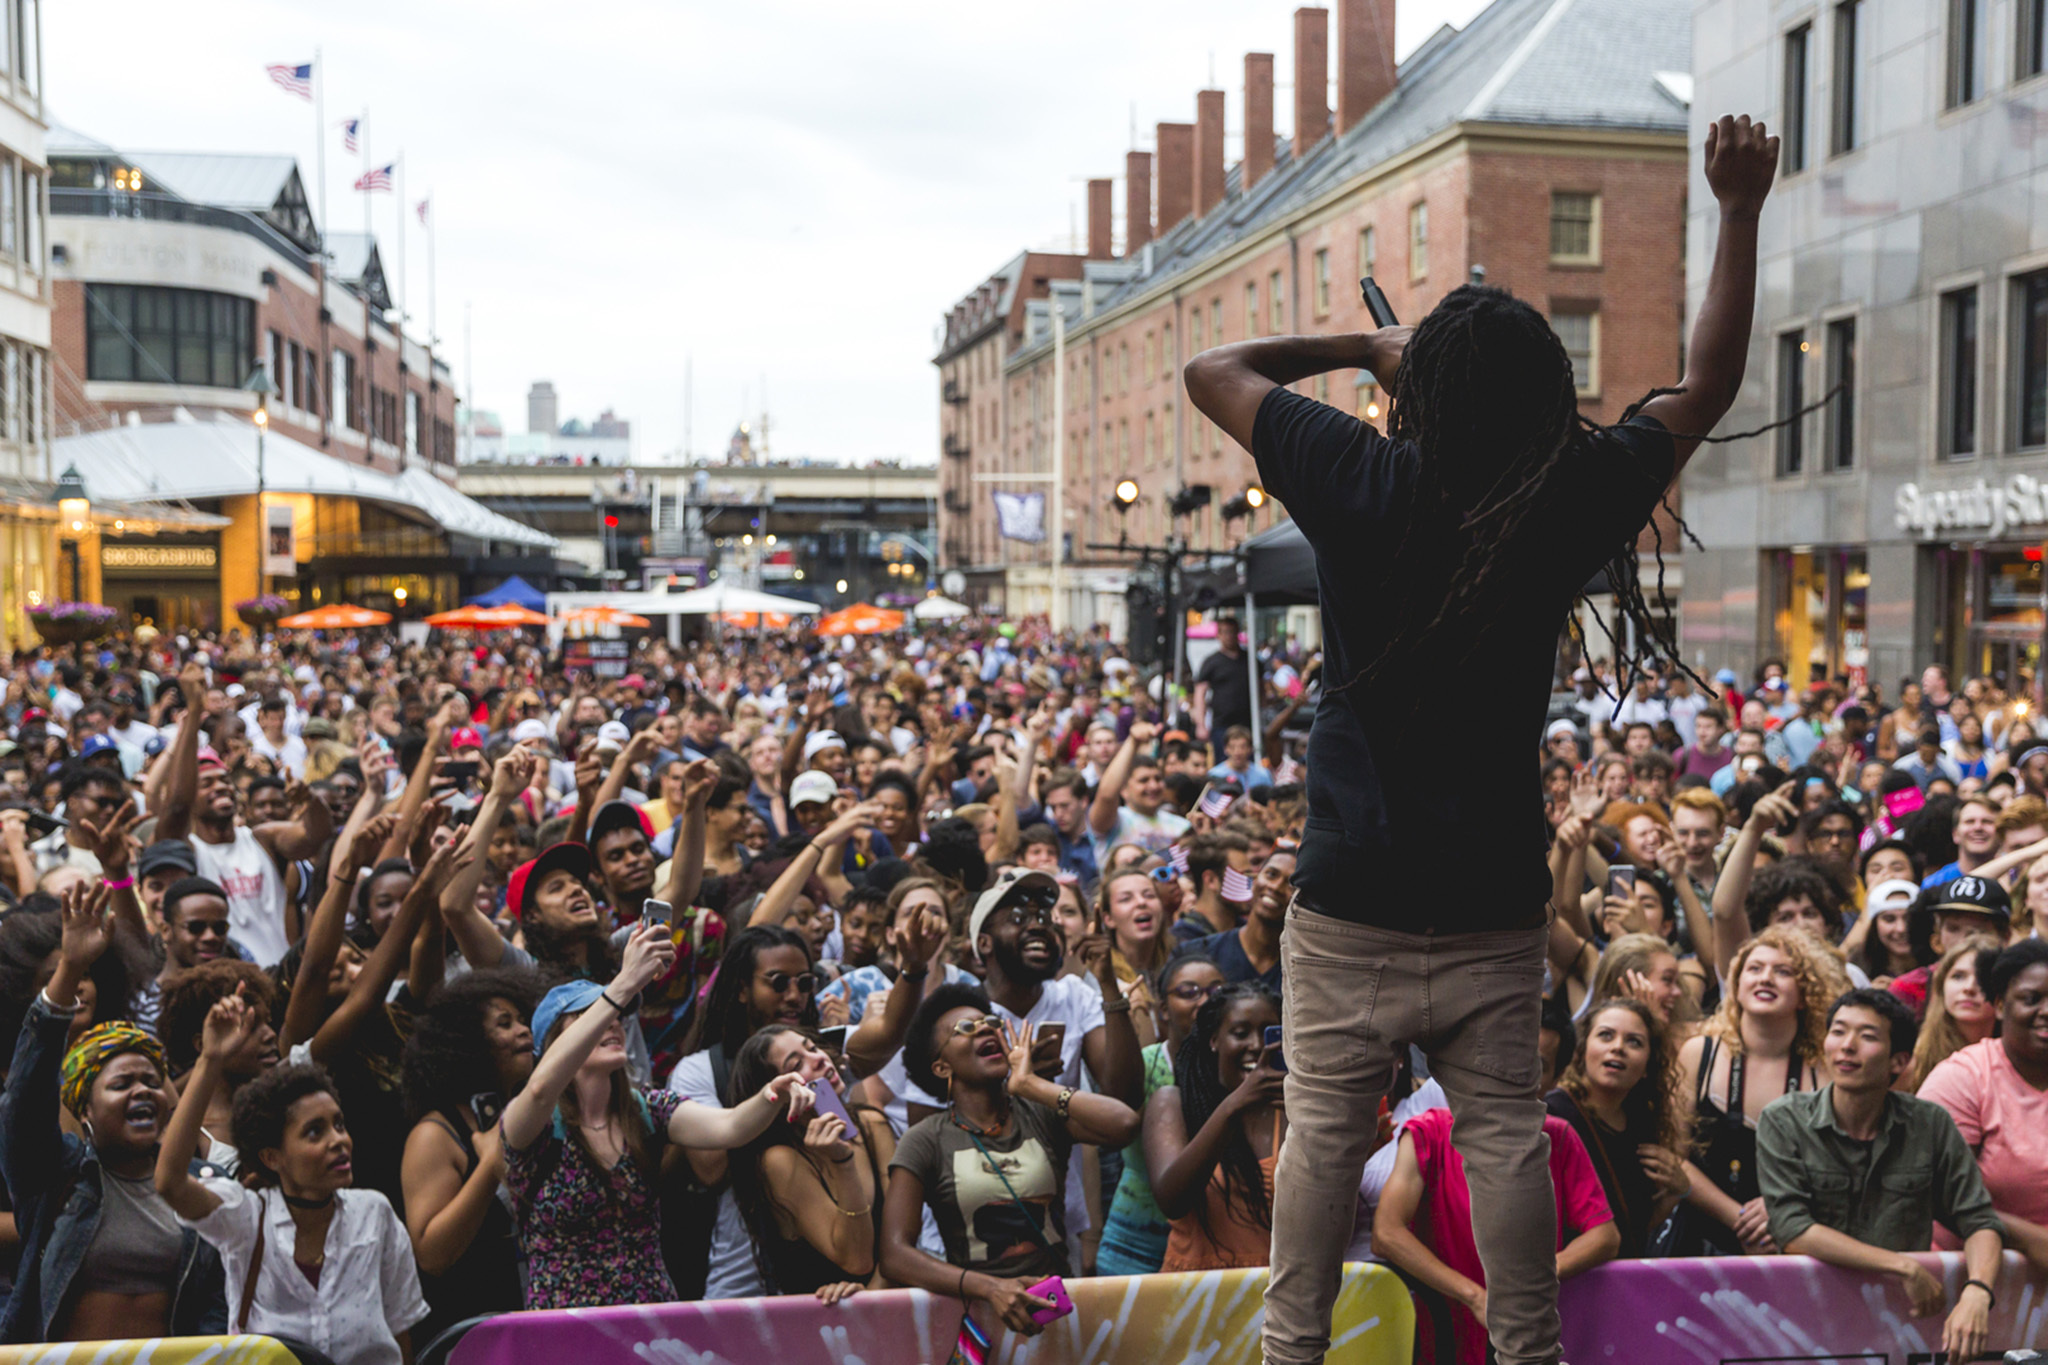 Best concerts and parties to hit up in NYC this Fourth of July